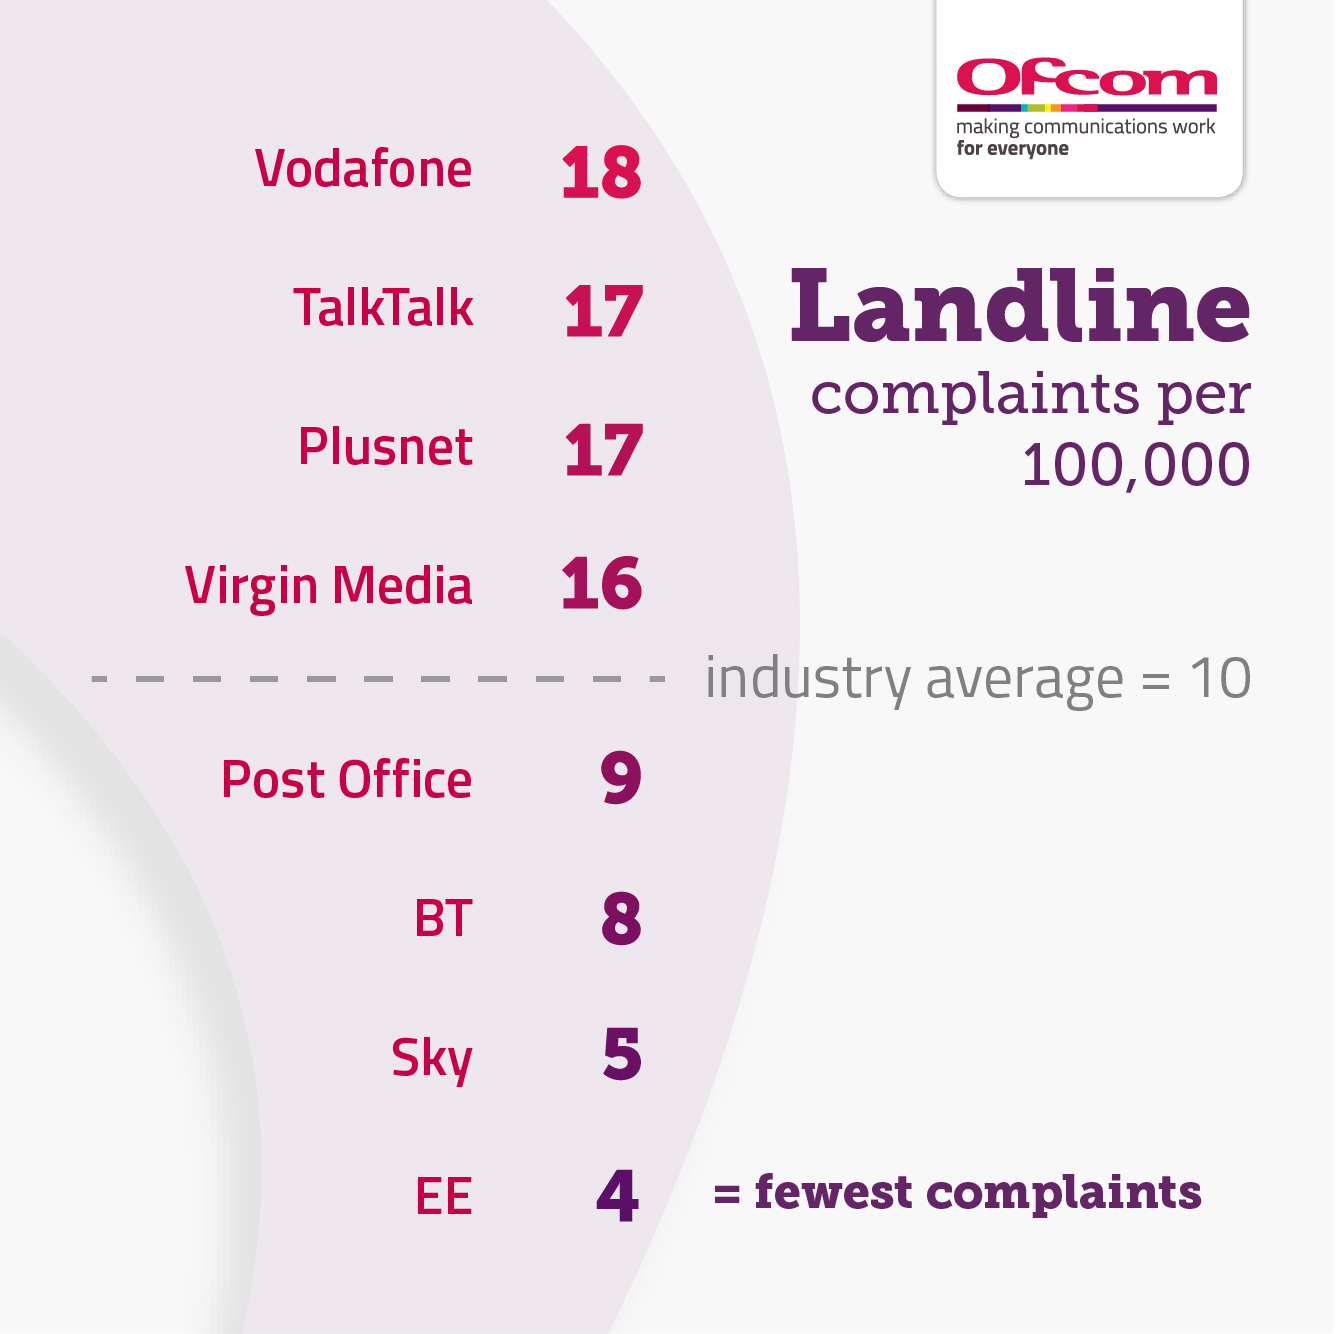 Vodafone = 18, TalkTalk = 17, Plusnet = 17, Virgin Media = 16, industry average = 10, Post Office = 9, BT = 8, Sky = 5, EE = 4